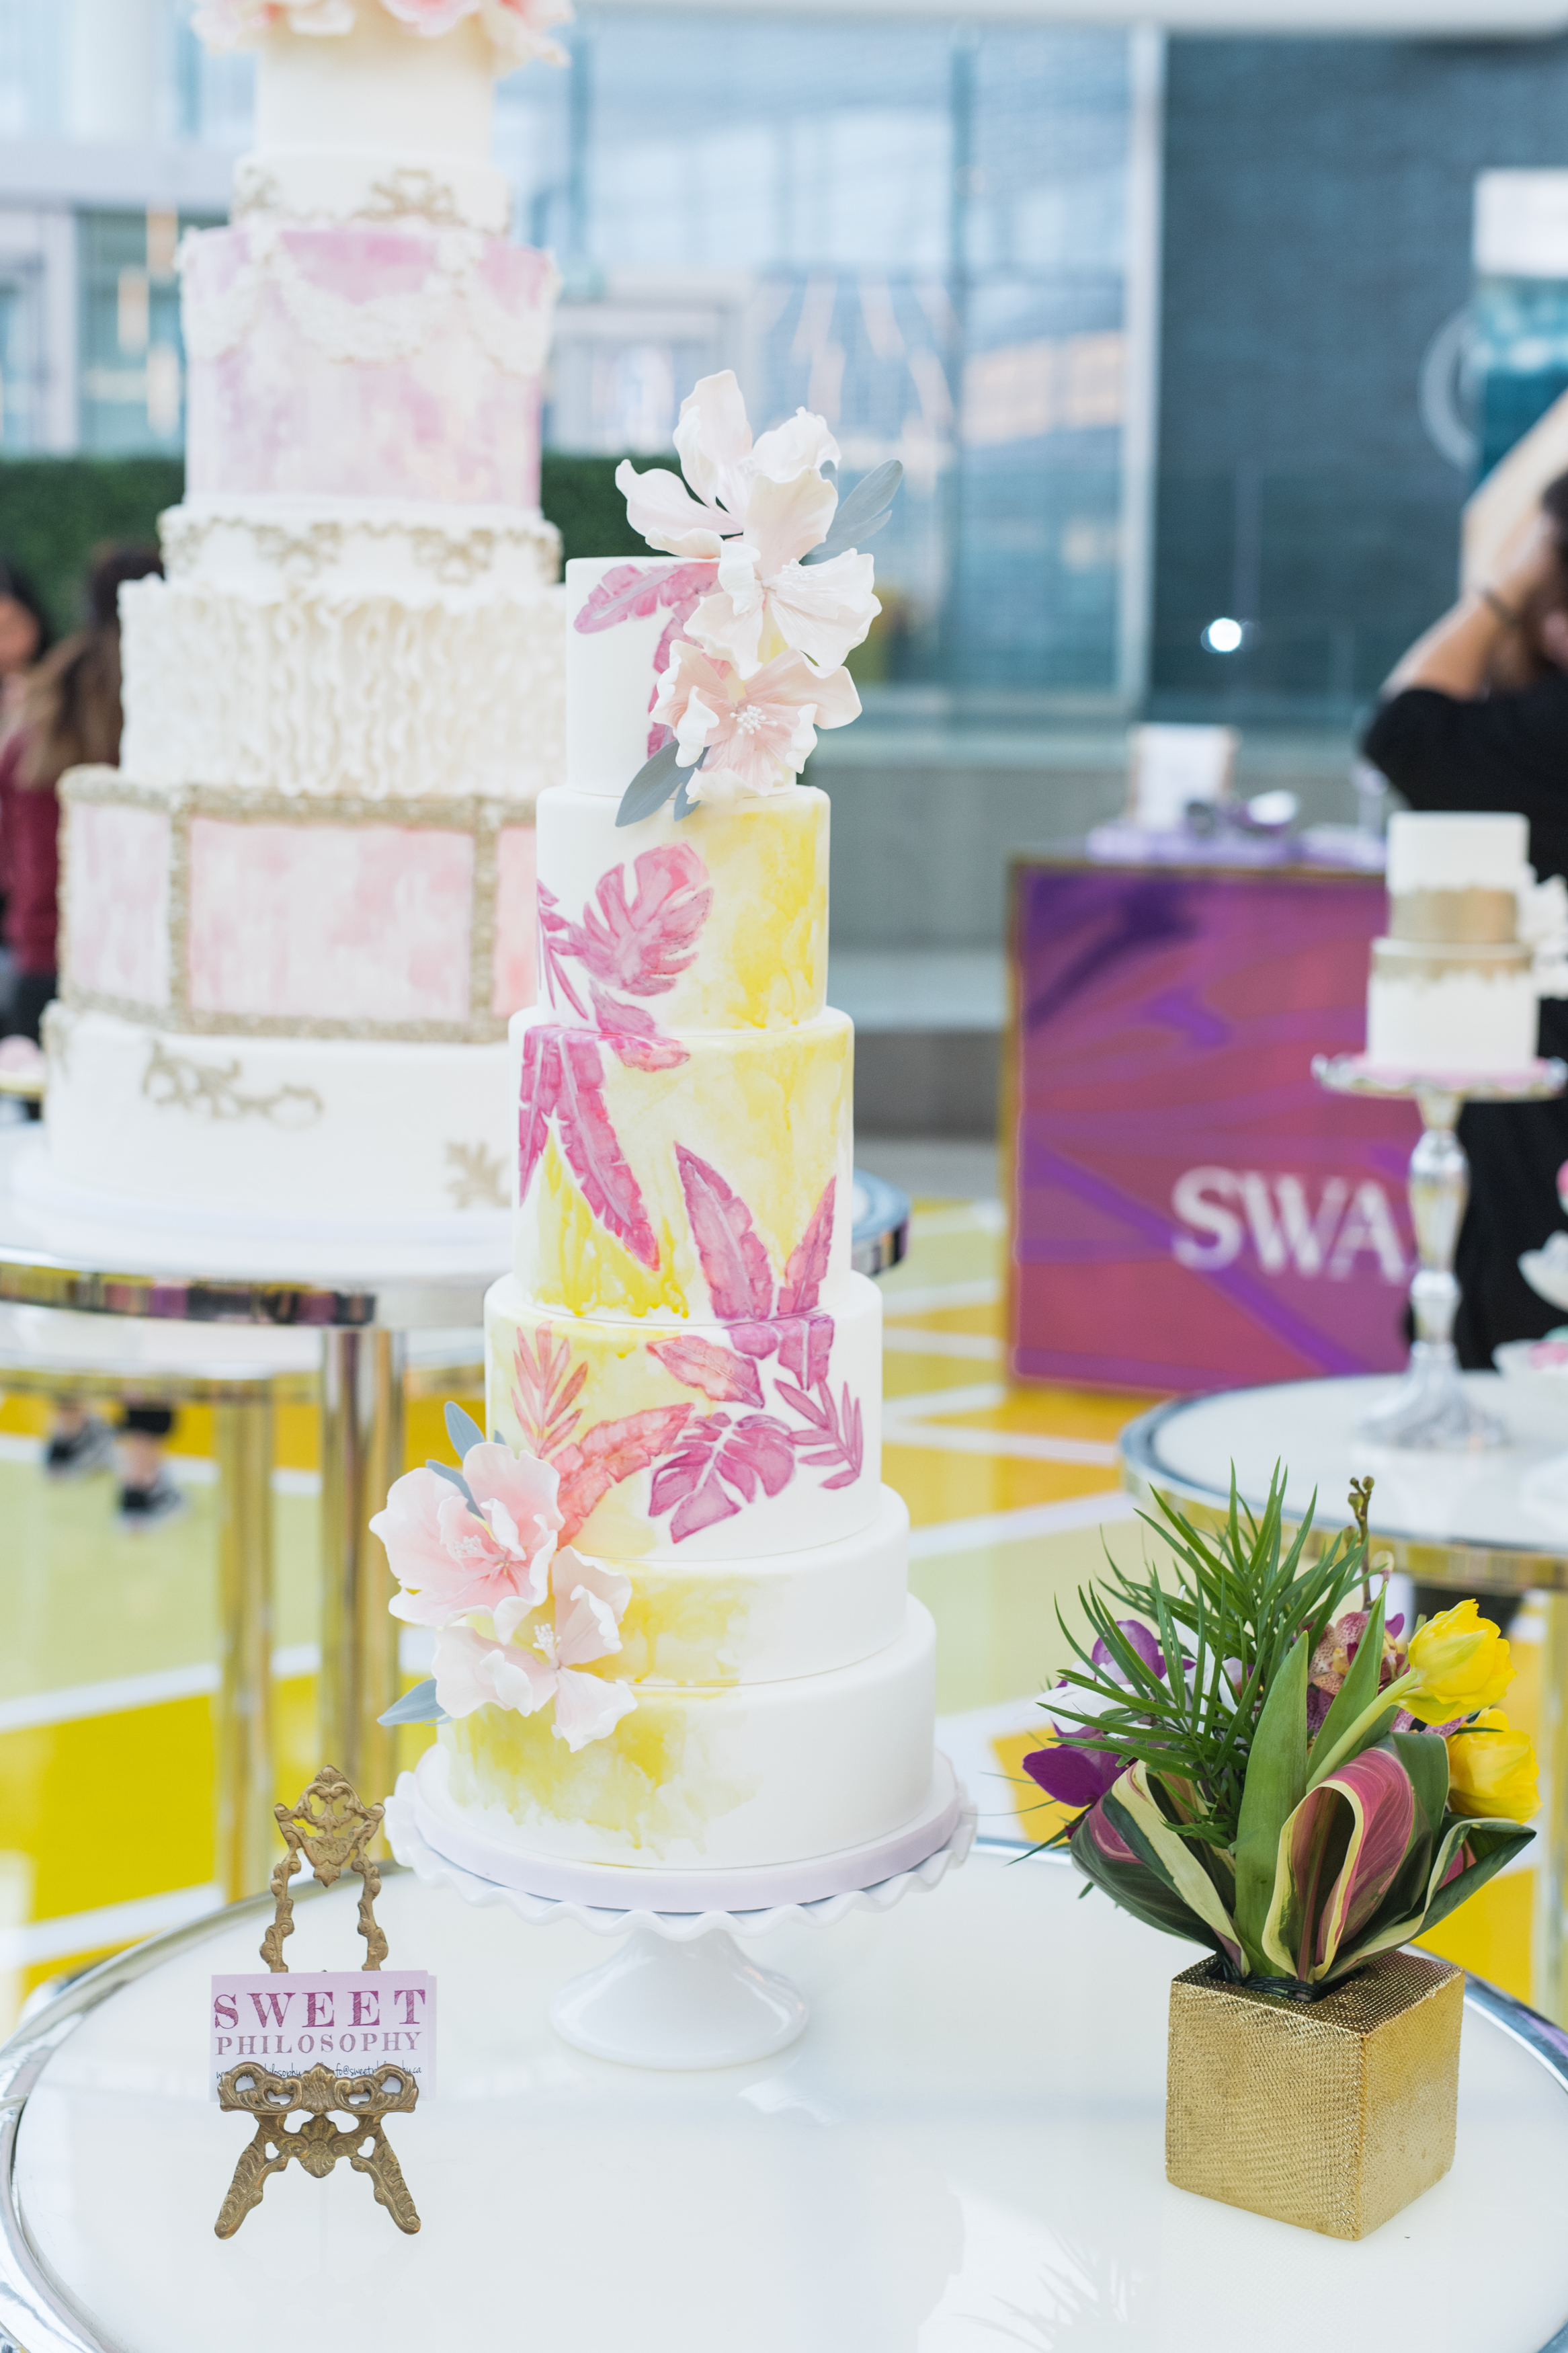 August In Bloom - Sweet Philosophy cakes - #SQ1Bridal (Square One Shopping Centre)